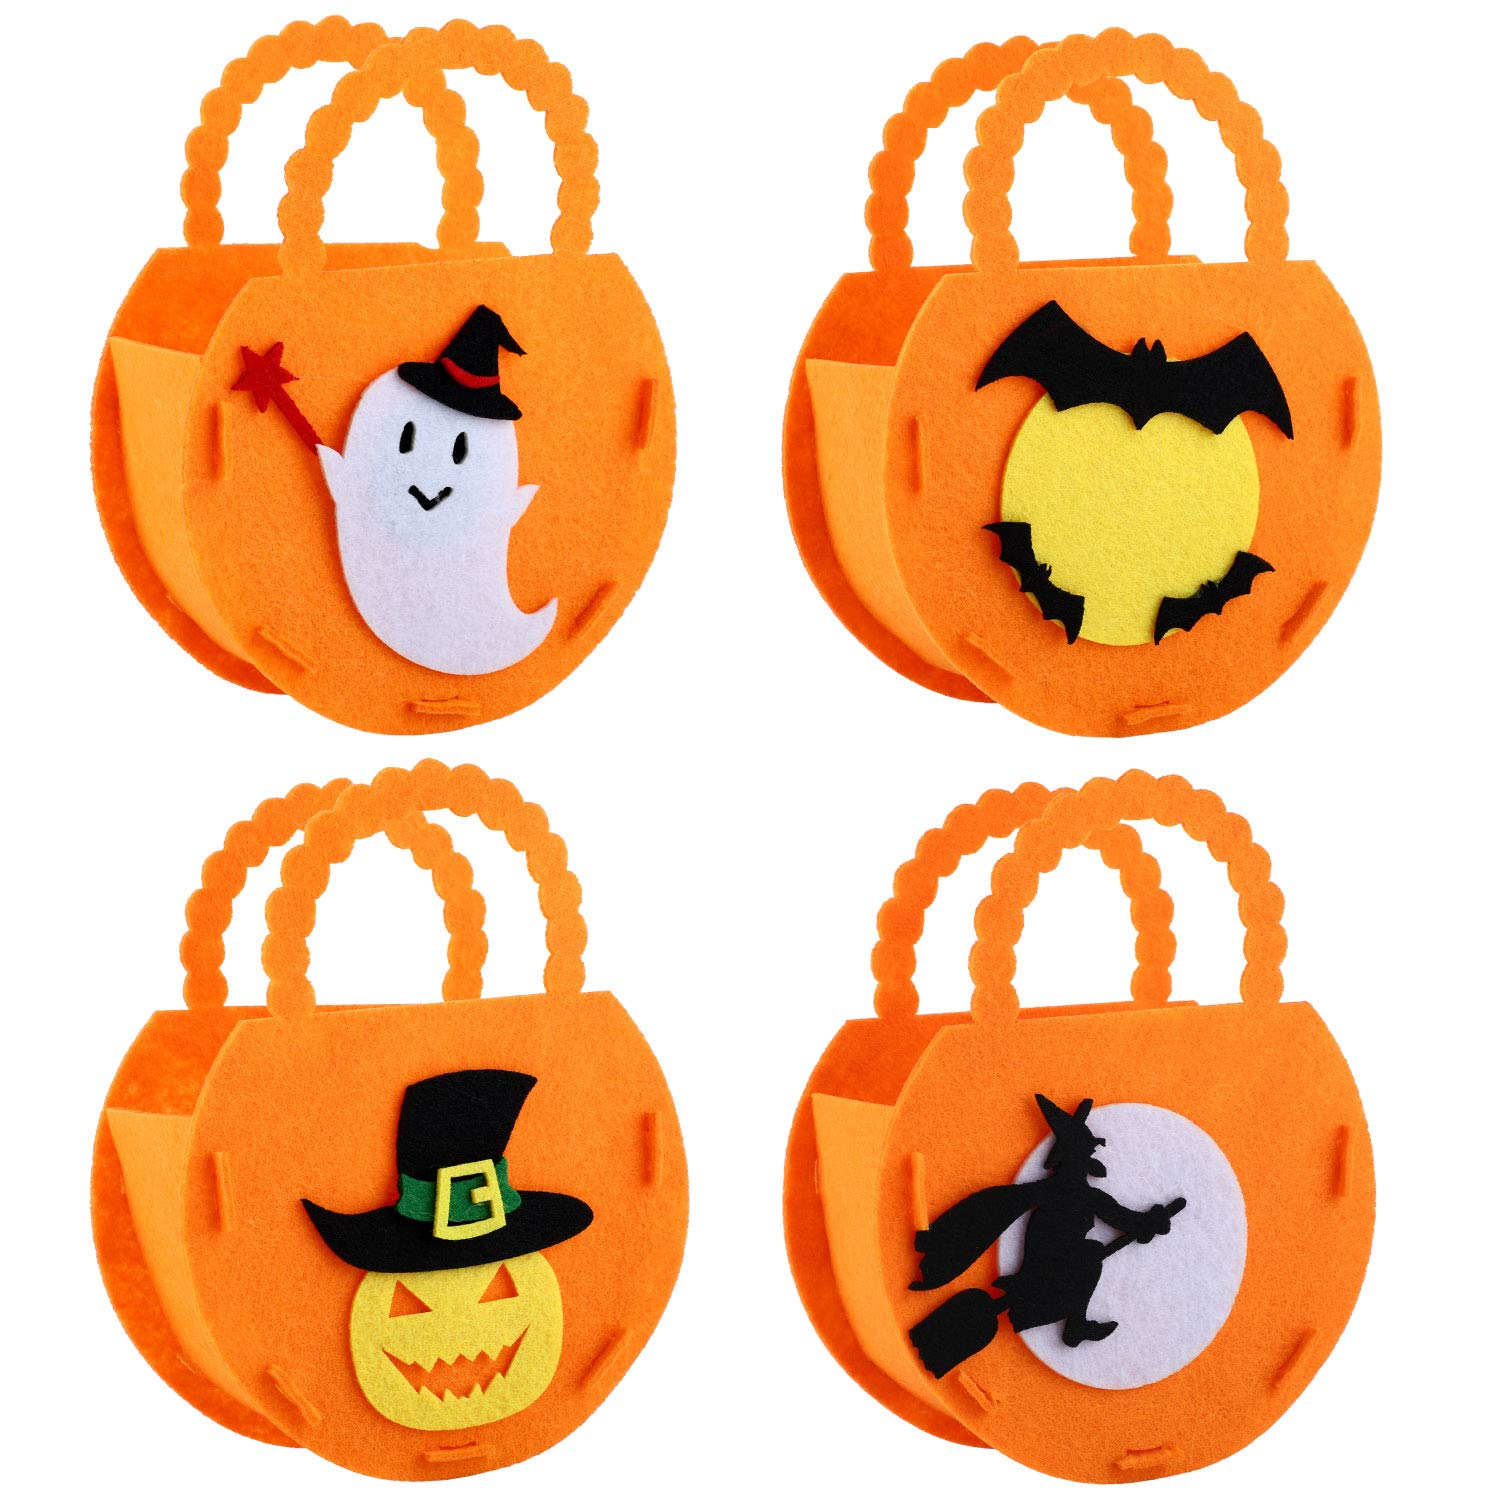 4 Styles 4 Pieces Halloween Tote Bags Trick or Treat Bag Non-Woven Fabric Candy Bags Halloween Goodie Gift Bags for Party Supplies